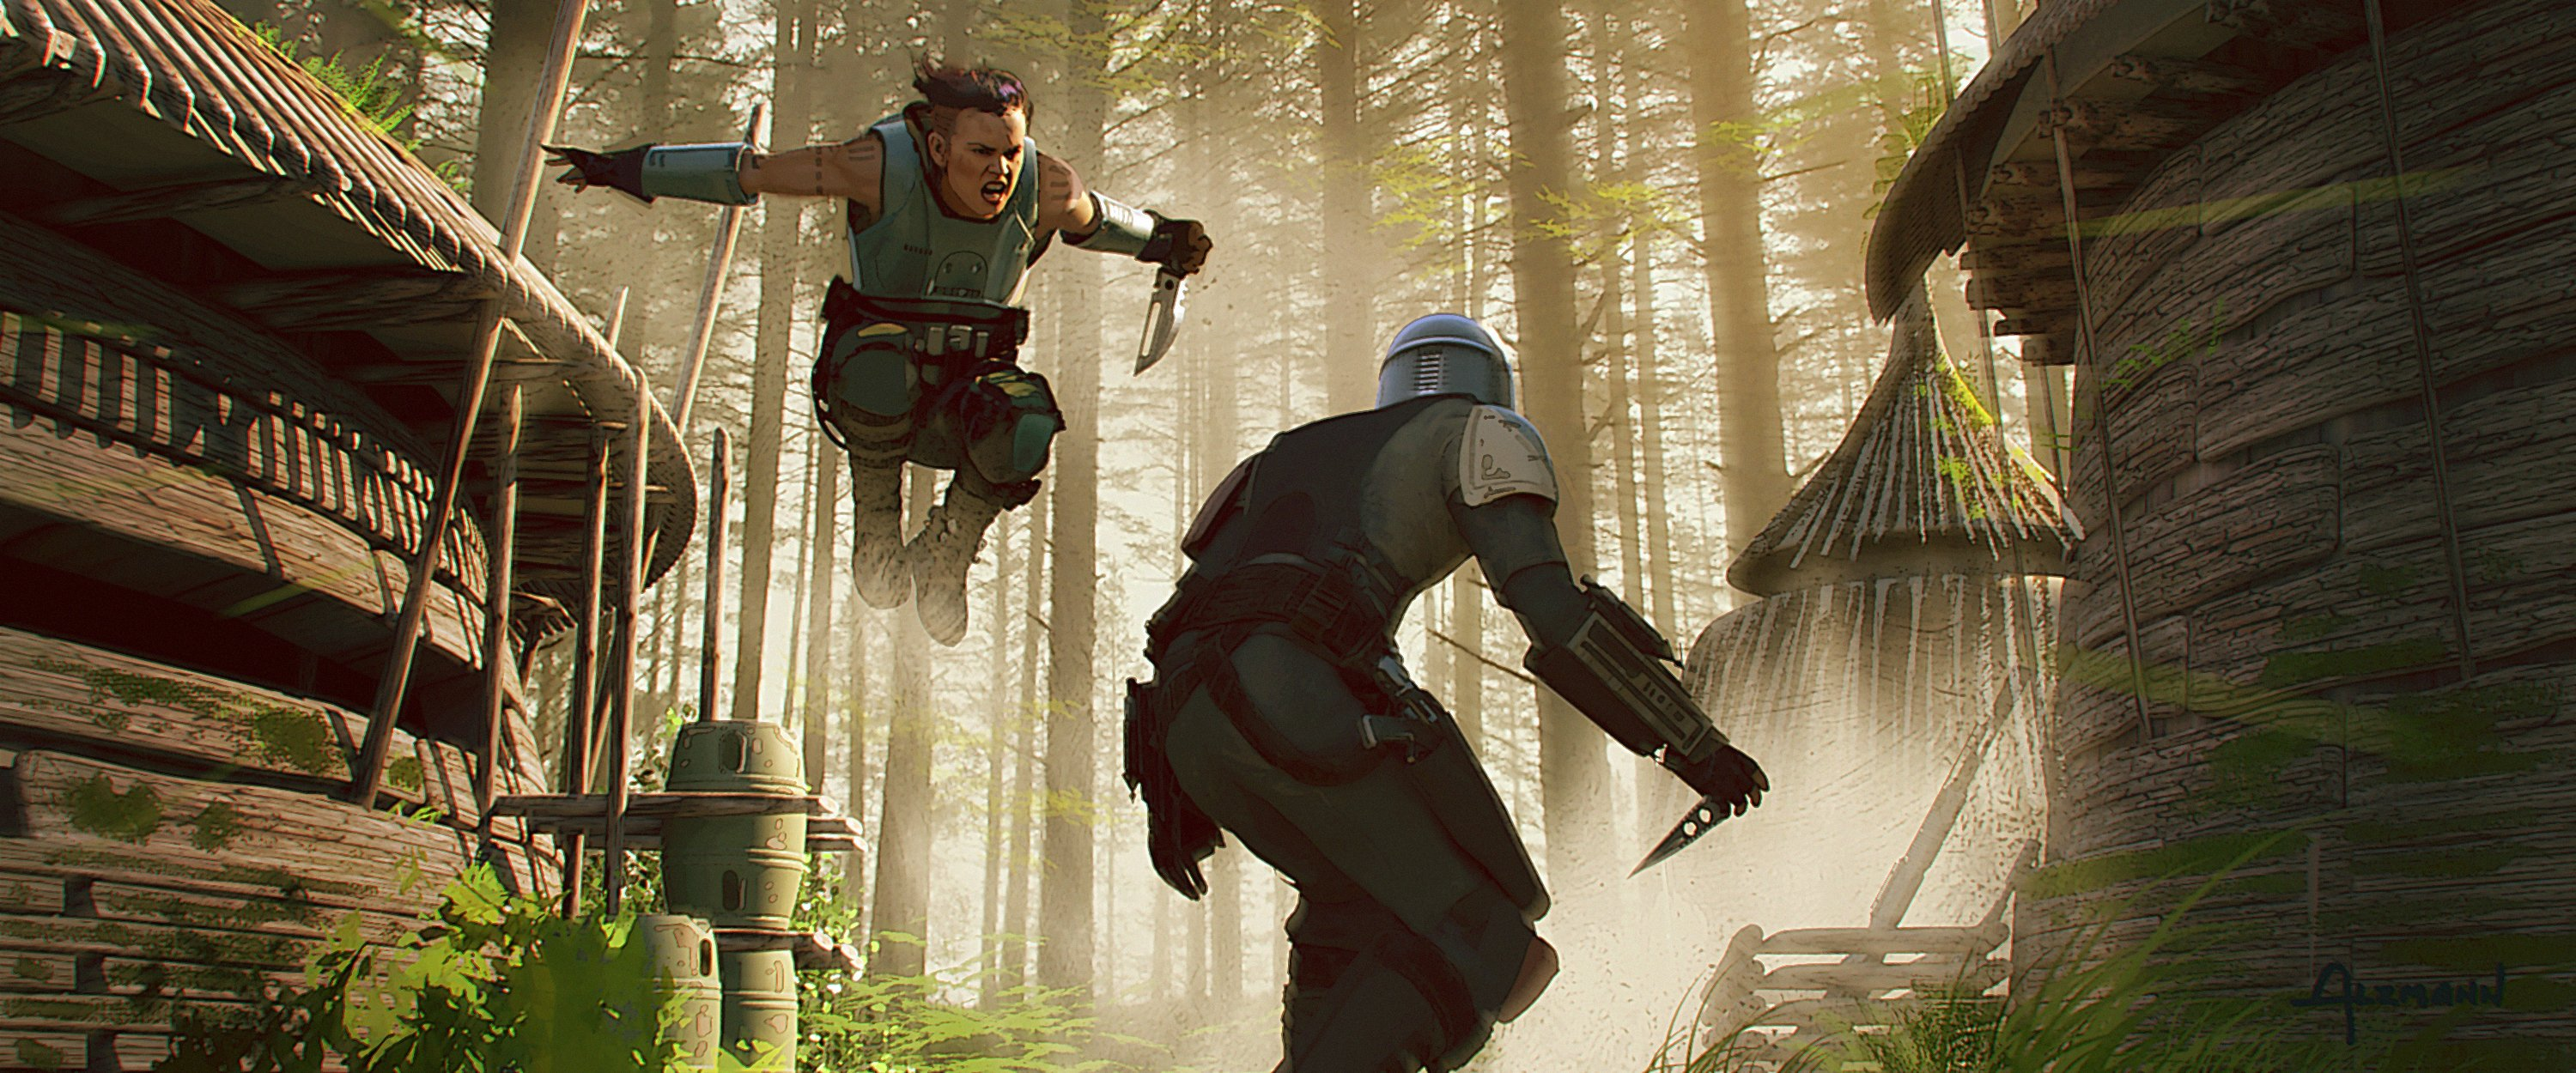 The Mandalorian Hd Wallpapers Pictures Images